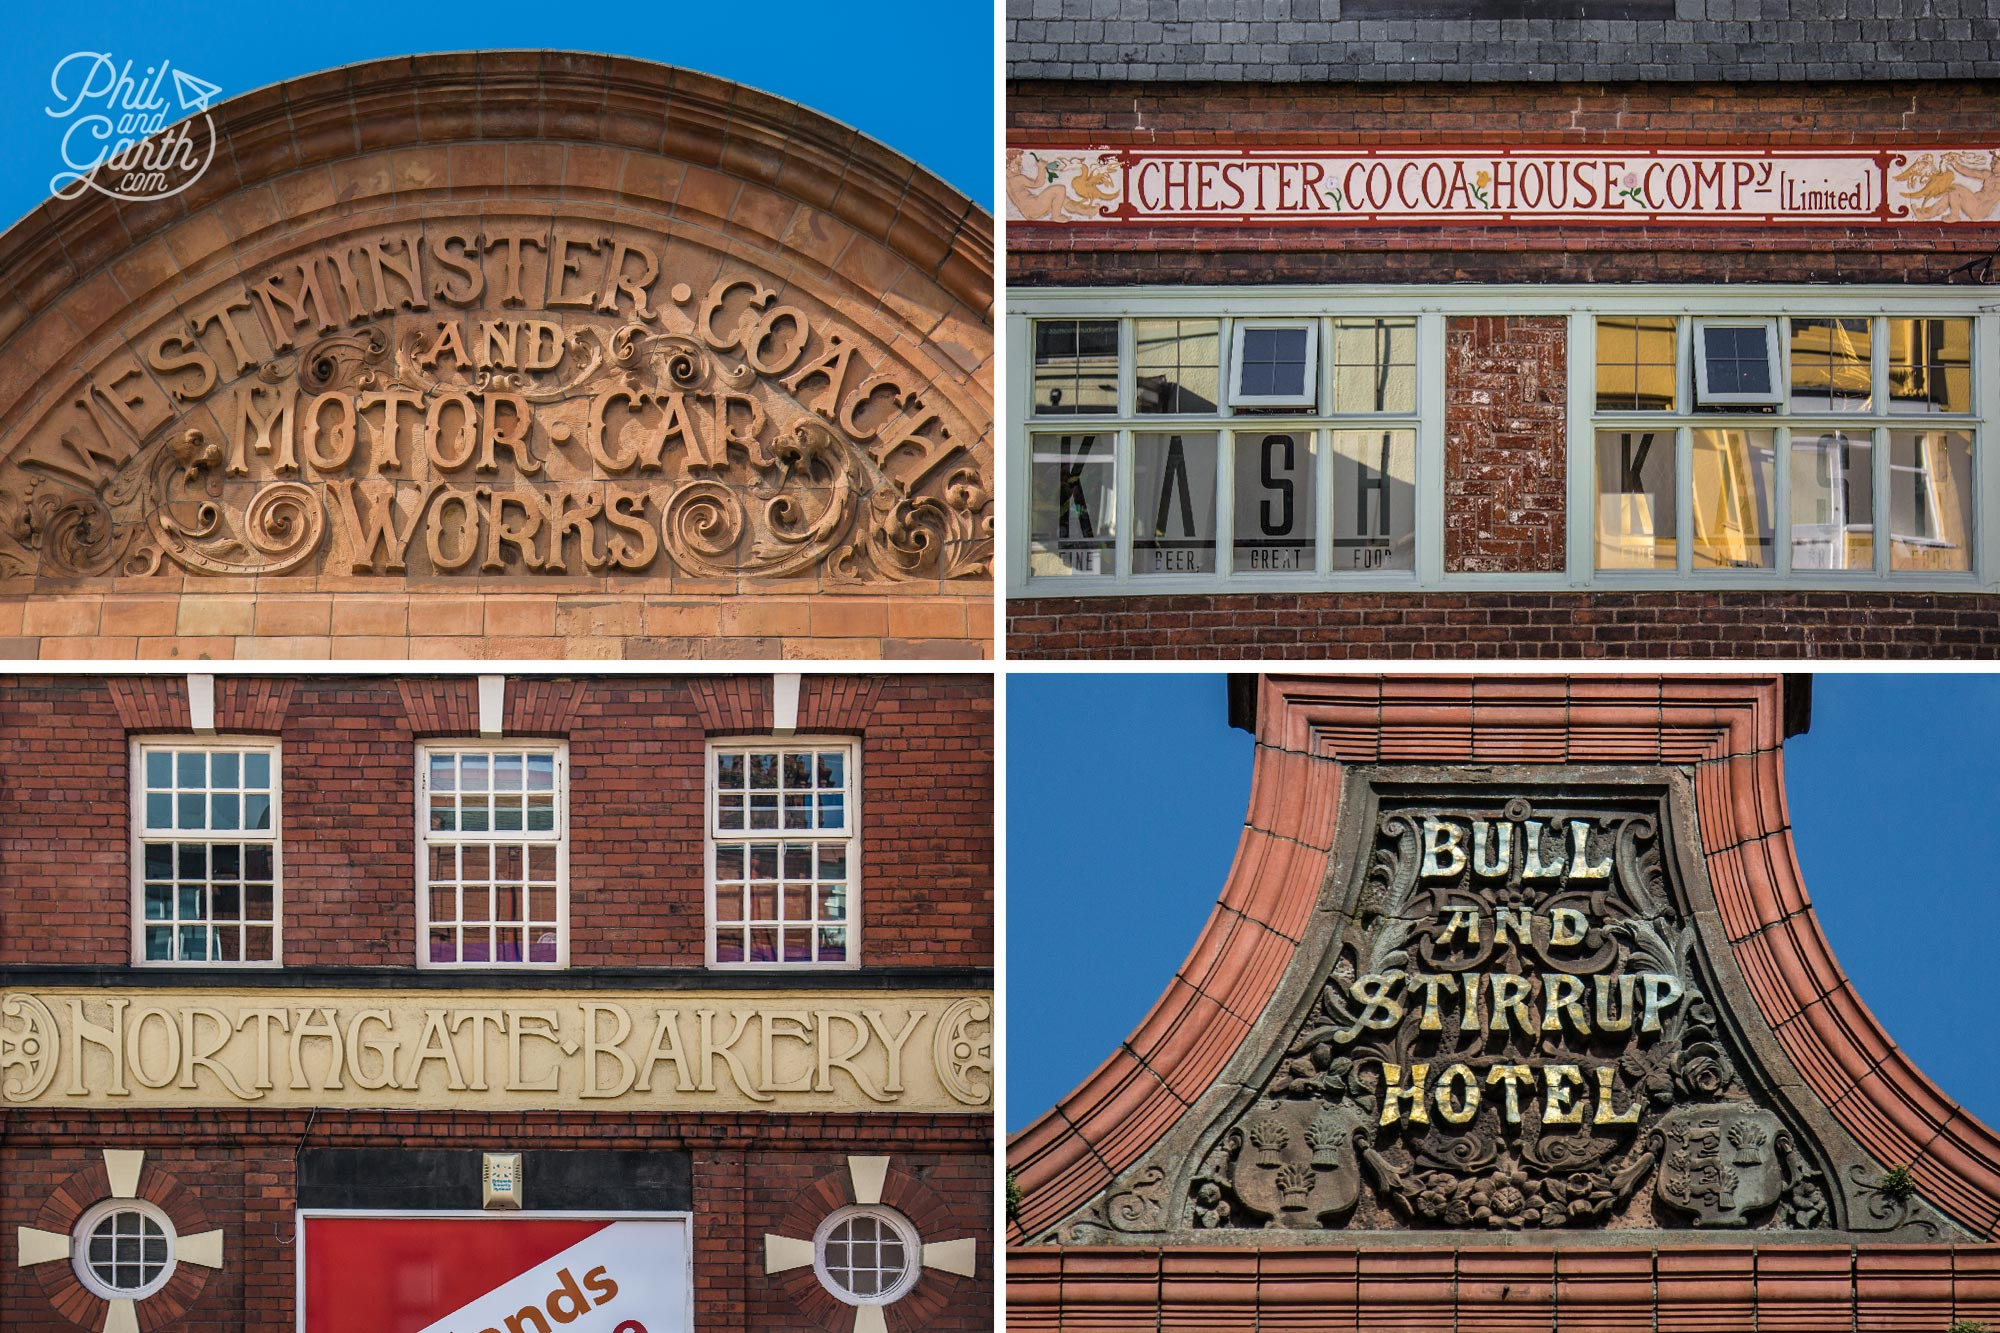 Some lovely typography on these old Victorian signs in Chester